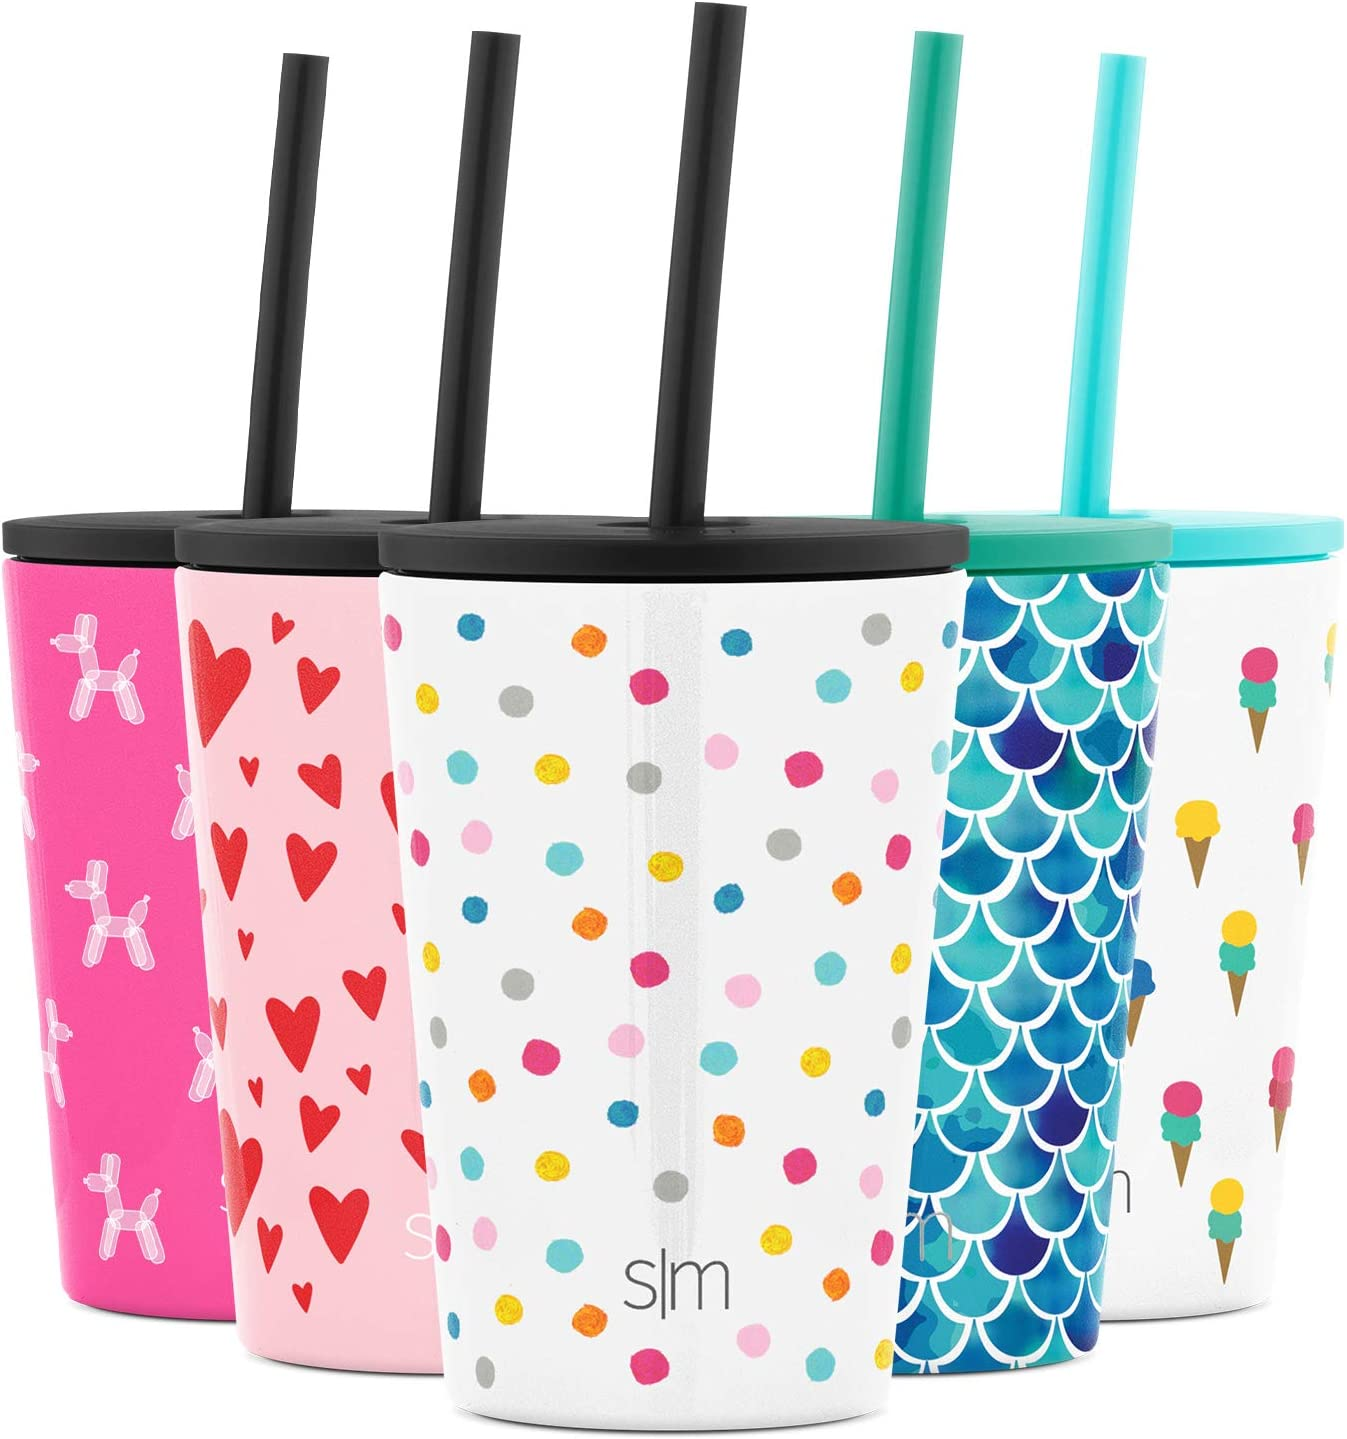 Simple Modern Kids Cup 12oz Classic Tumbler with Lid and Silicone Straw - Vacuum Insulated Stainless Steel for Toddlers Girls Boys Polka Play